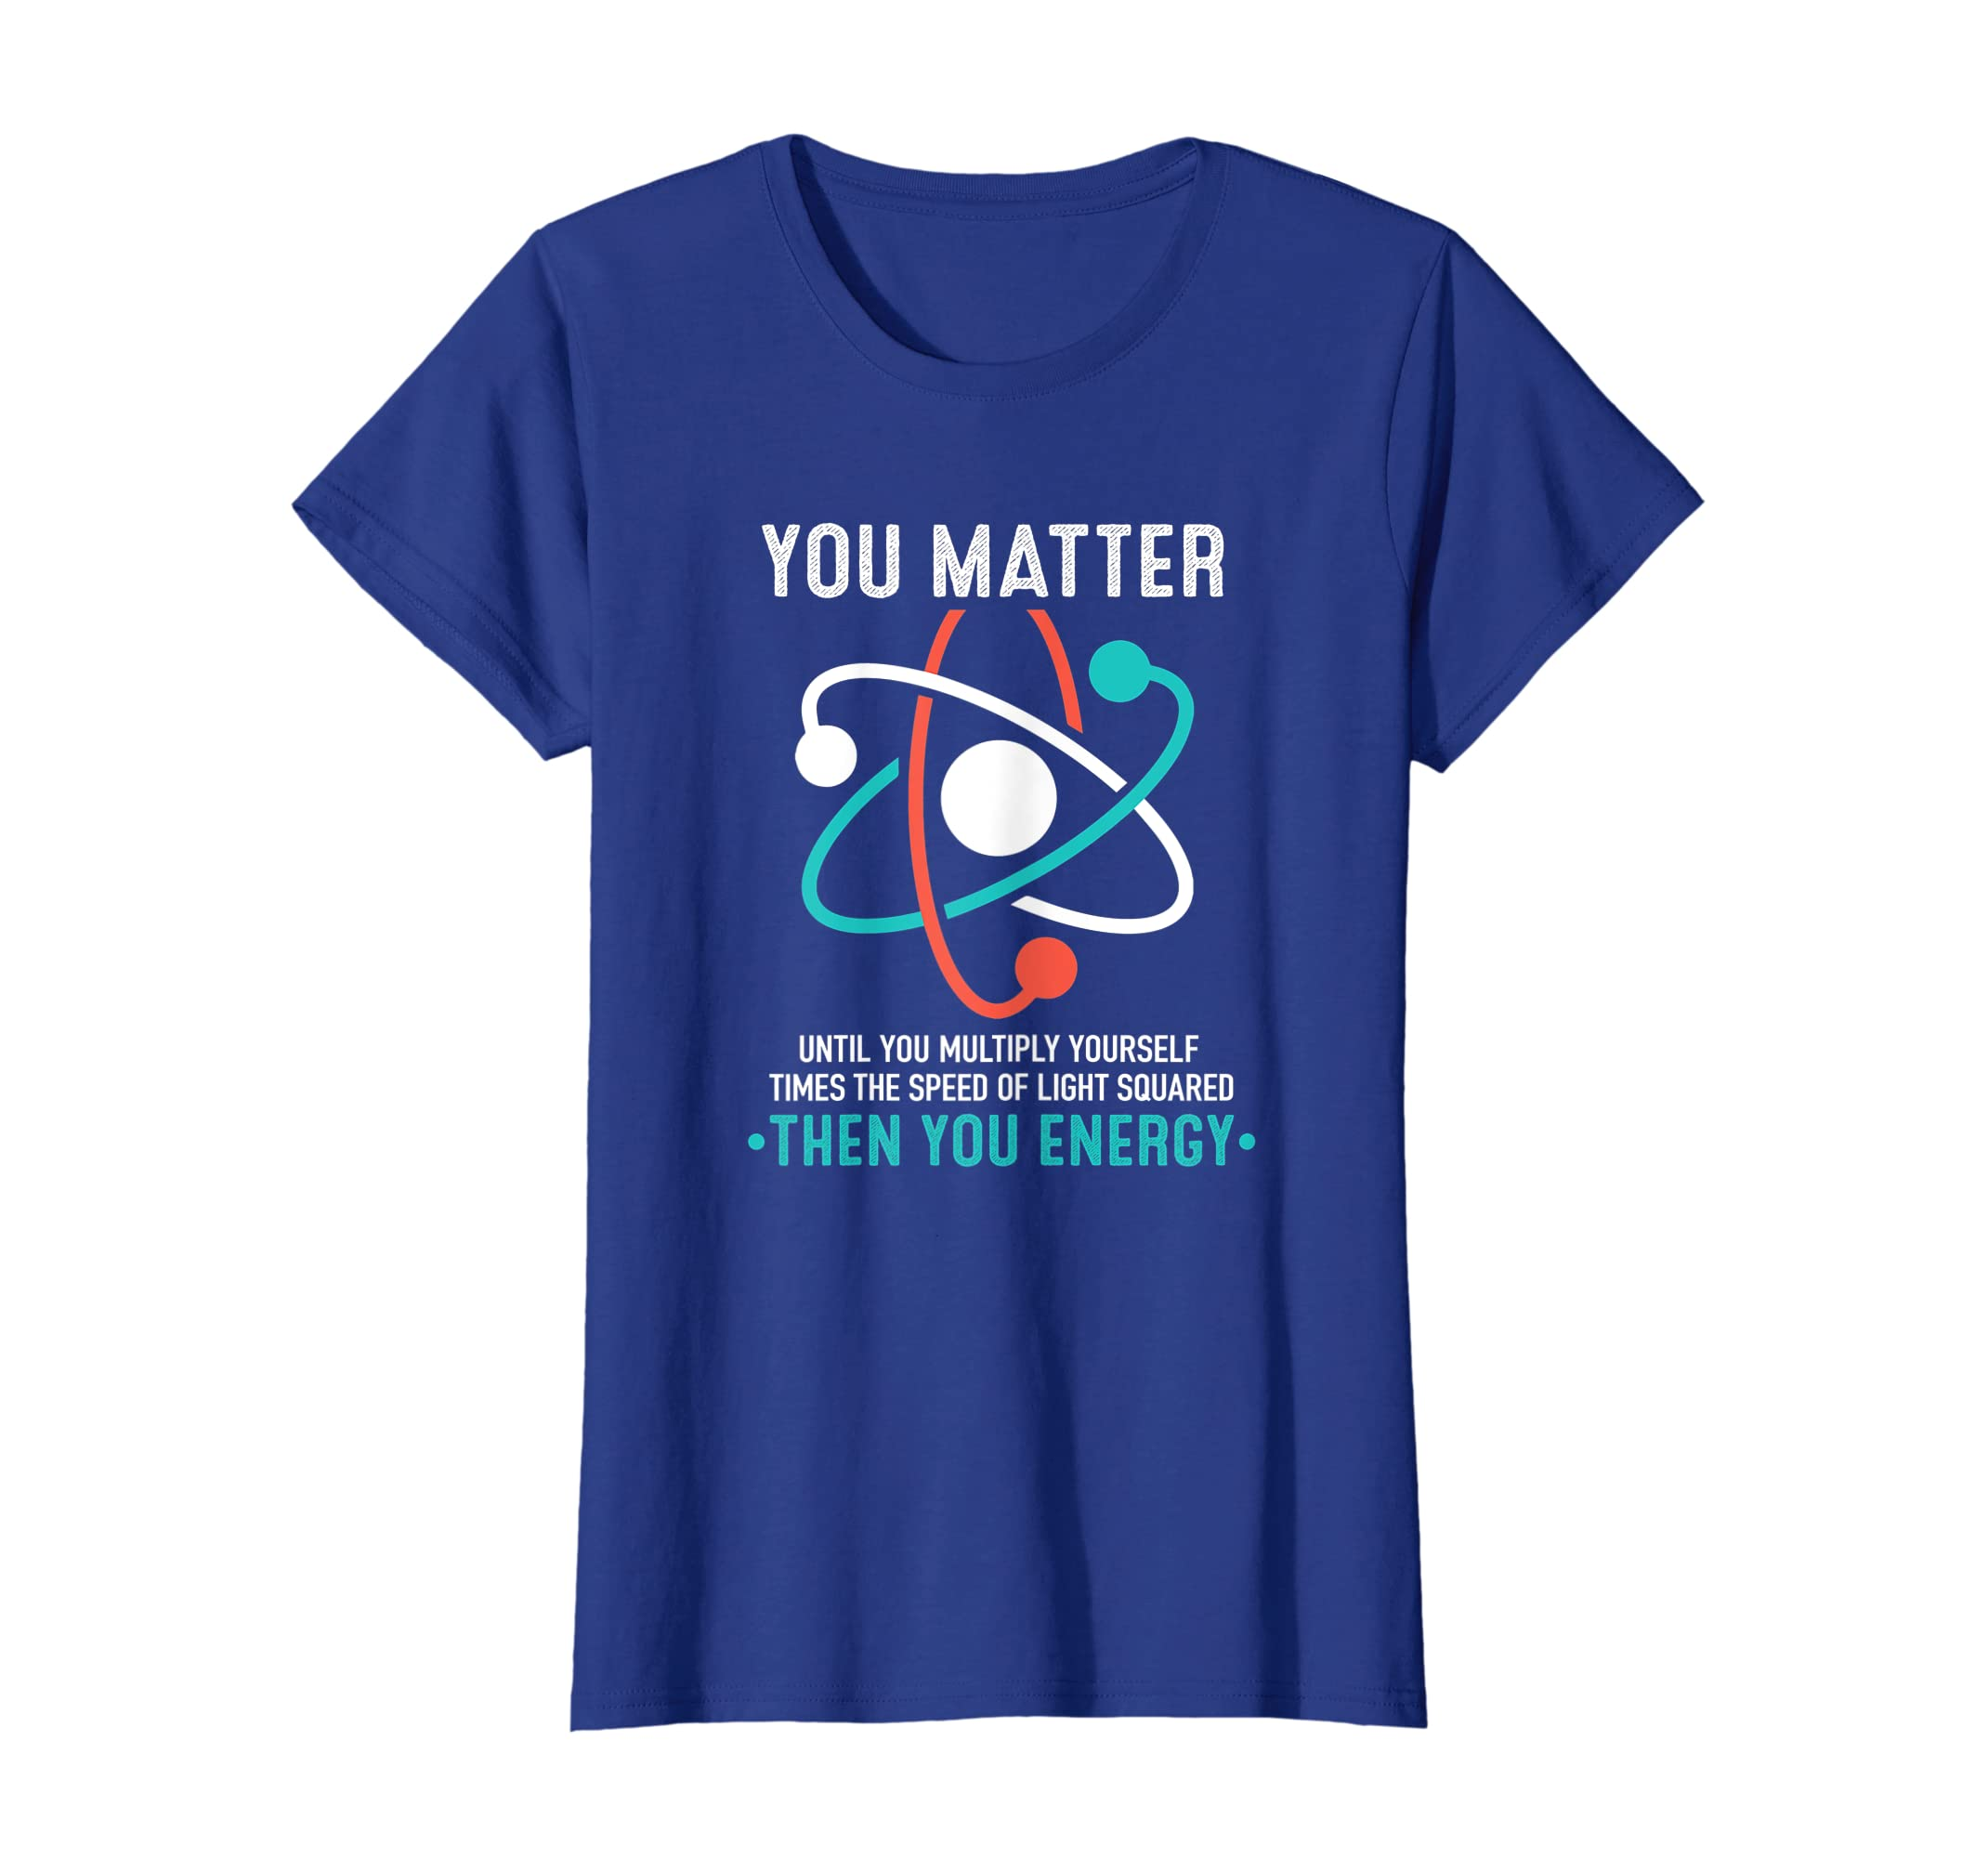 a6d424f20 Amazon.com: You Matter You Energy Funny Physicist Physics Lover T Shirt:  Clothing